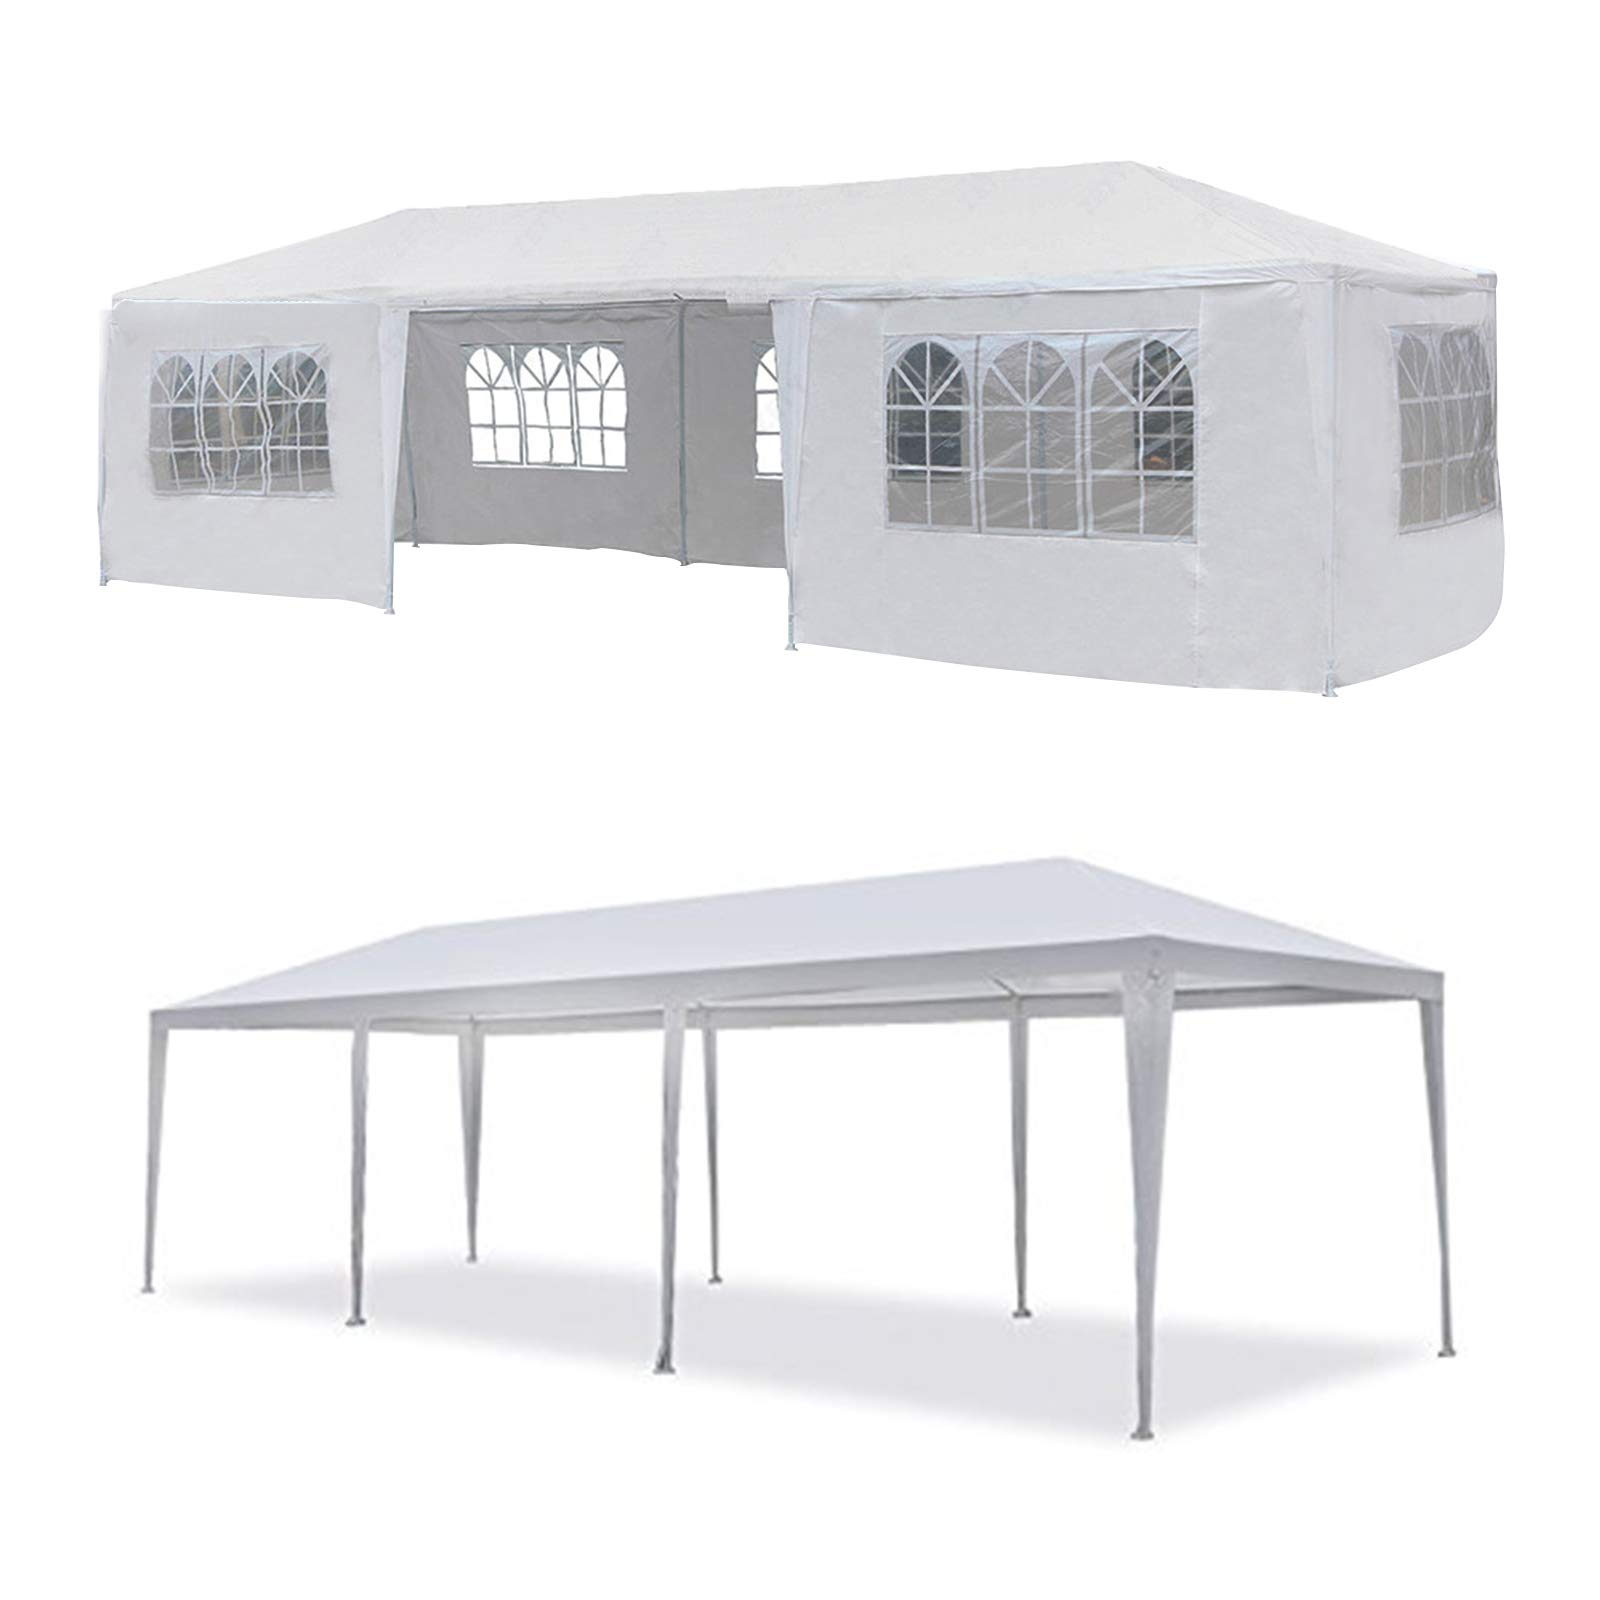 mecor 10'x30'Outdoor Canopy Party Event Wedding Tent with 7 Removable Sidewall 3 Rooms,Upgraded Stainless Steel Tube Waterproof Sun Shelter Canopy for Shows,Camping Etc (10'x30')